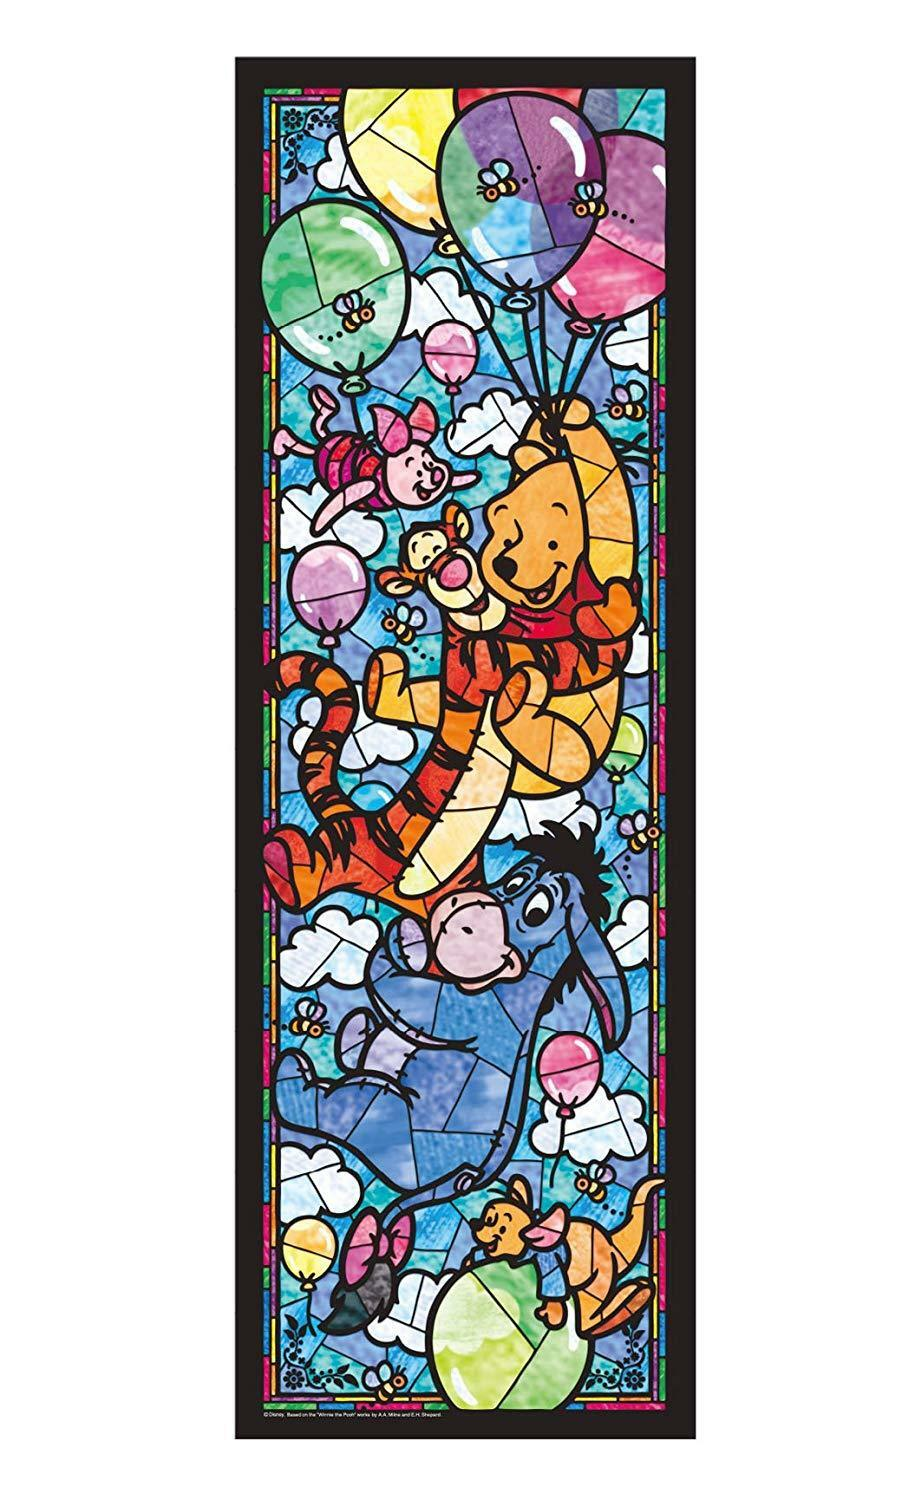 Tenyo Jigsaw Puzzle DSG-456-722 Stained 456 Piece Winnie the Pooh Stained DSG-456-722 Glass Art JP 7380ee